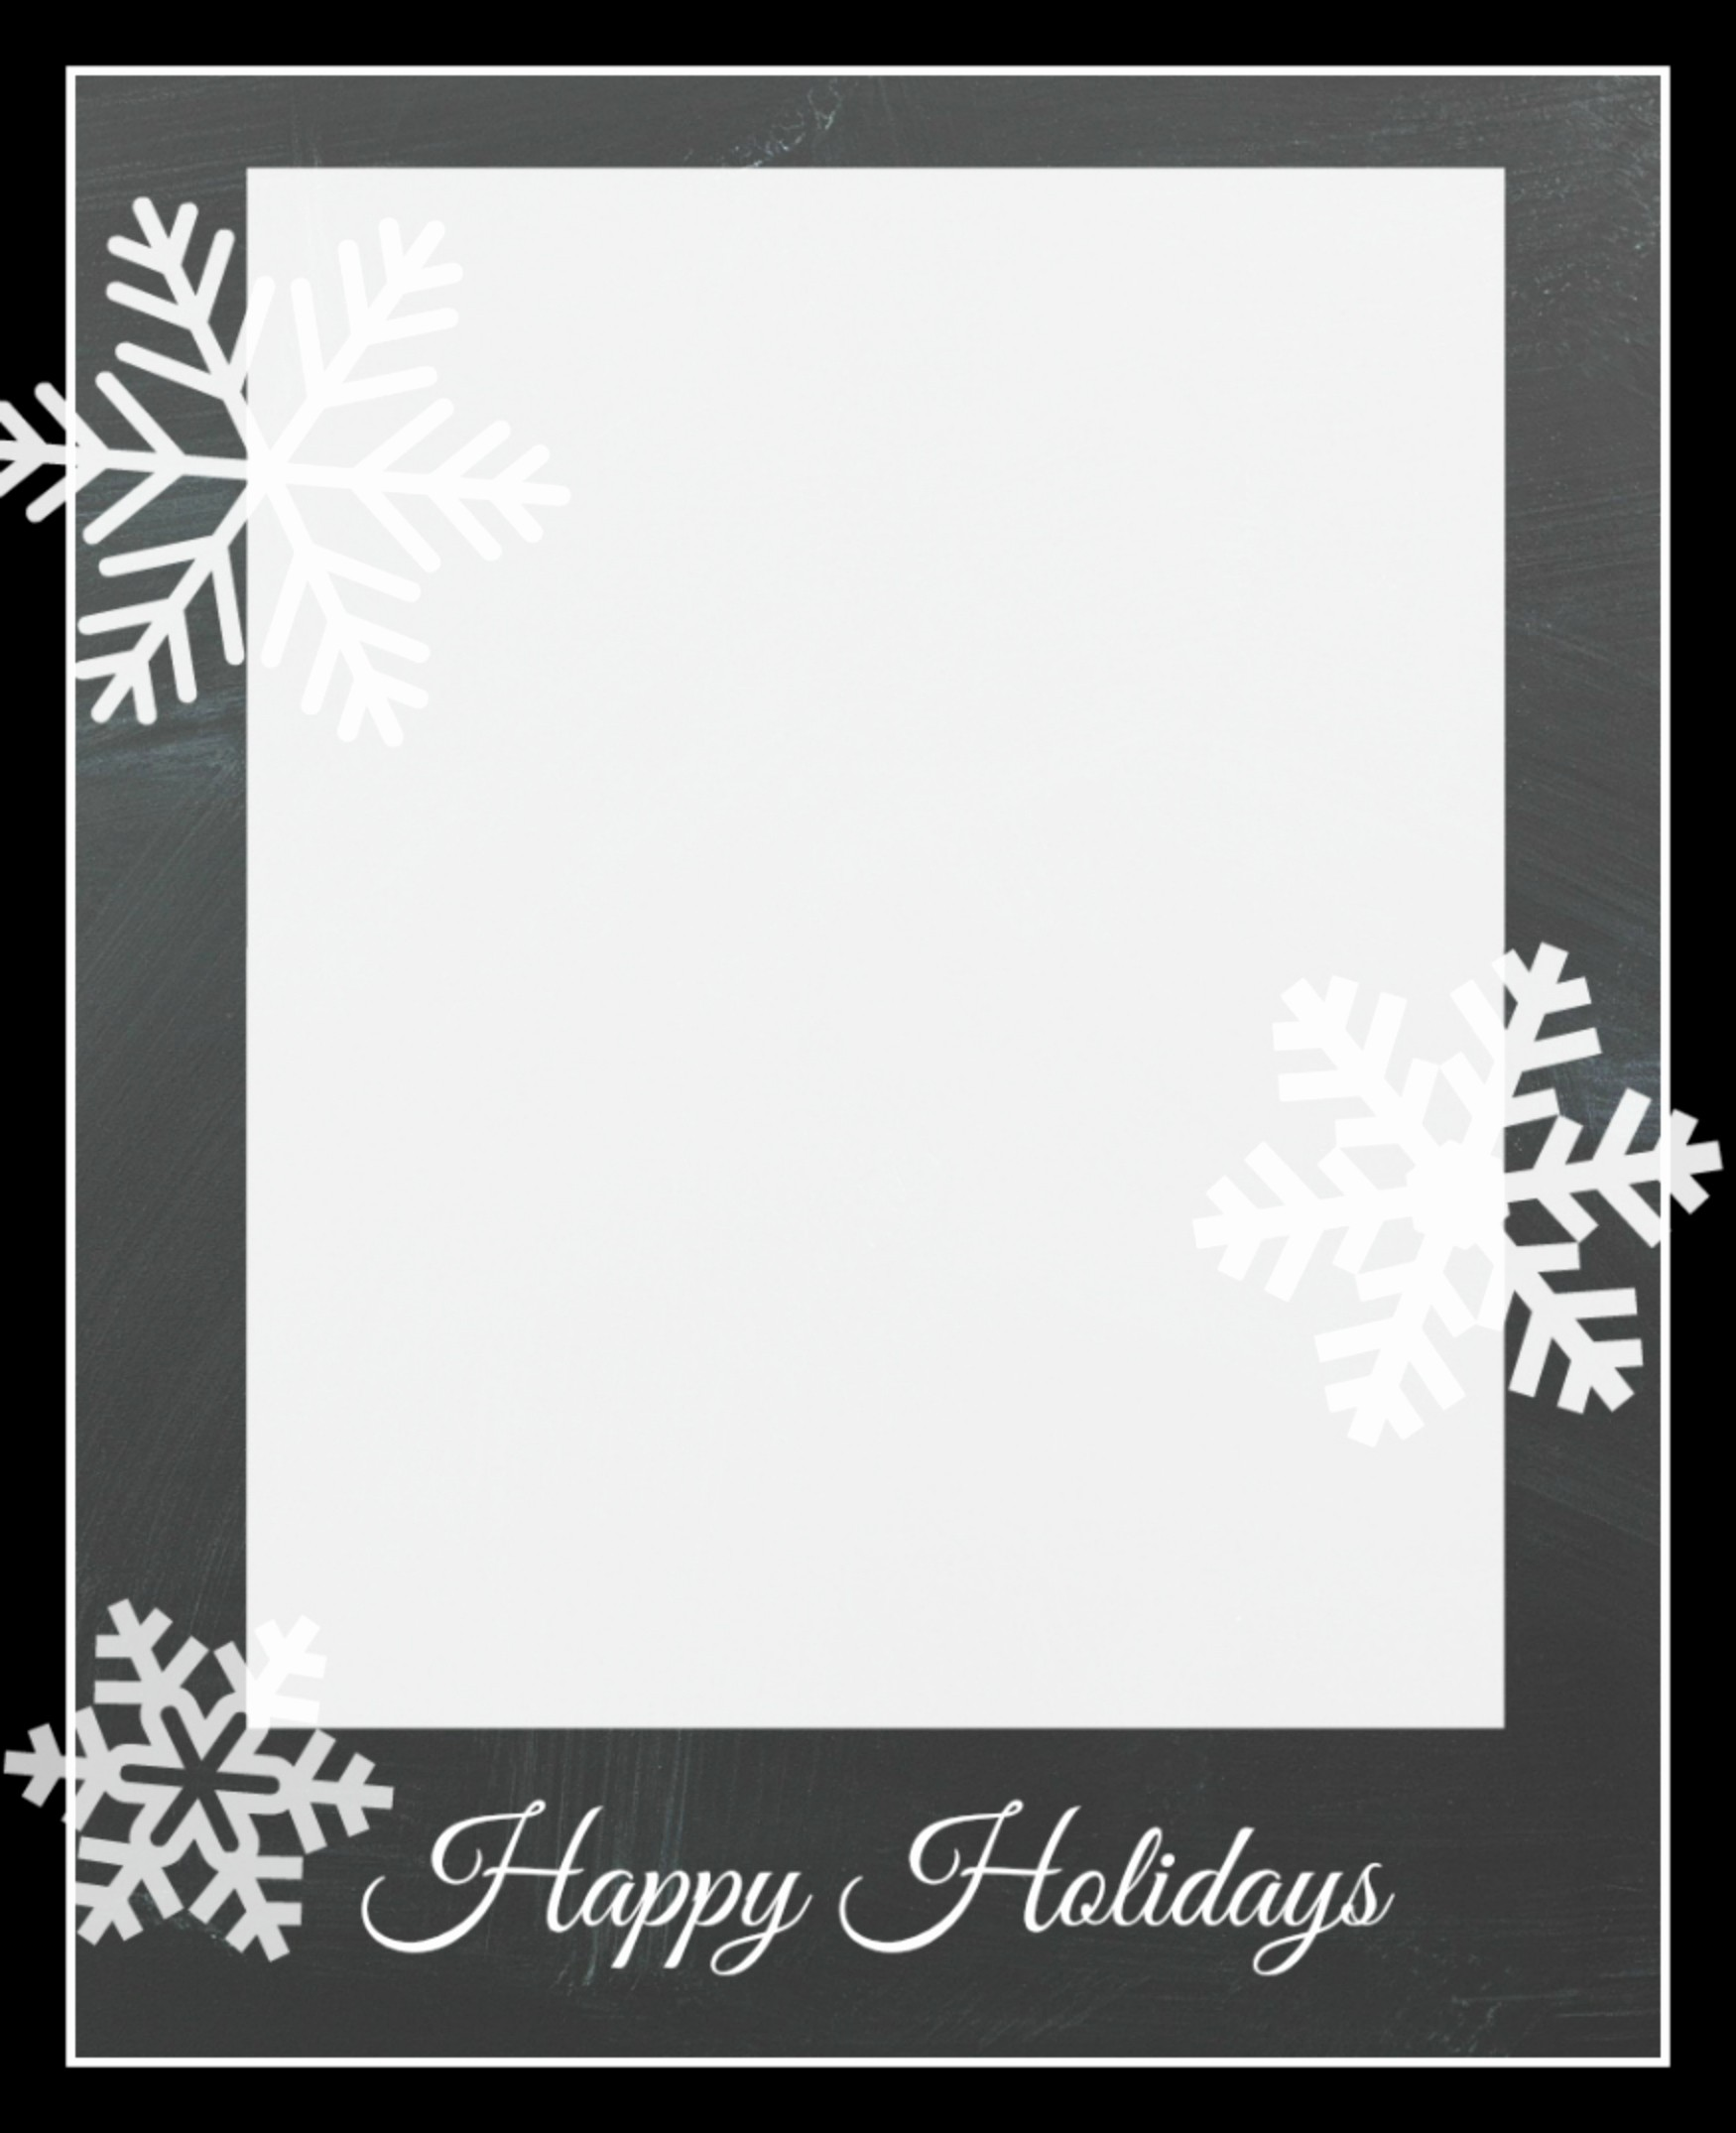 Greetings Card Templates for Word New Free Christmas Card Templates Crazy Little Projects